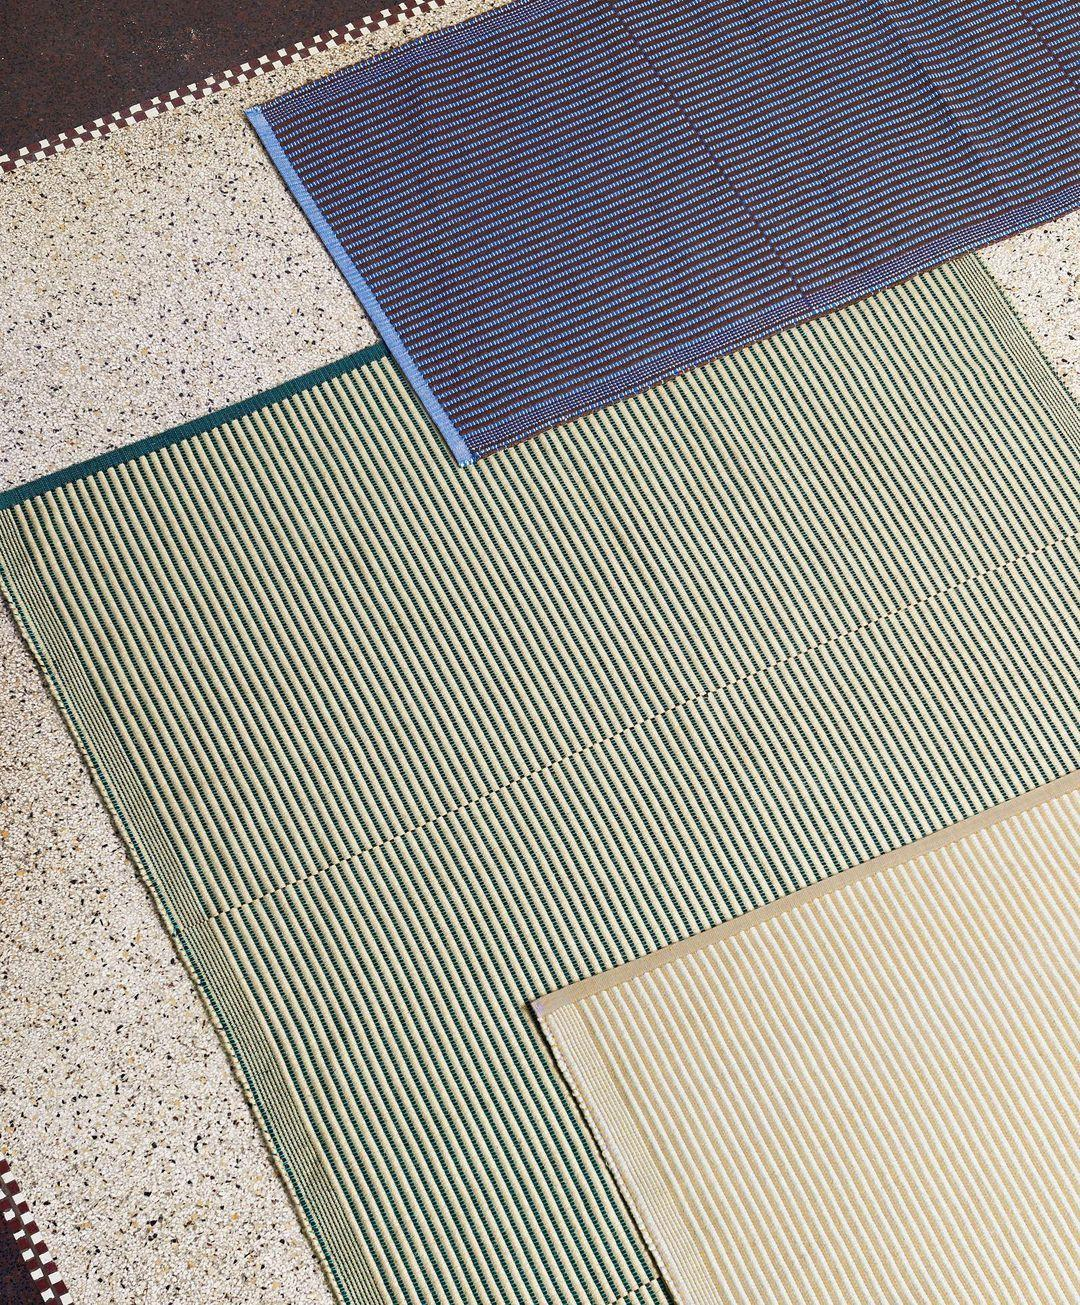 Striped rugs by Julie Richoz for Hay in green, beige and blue